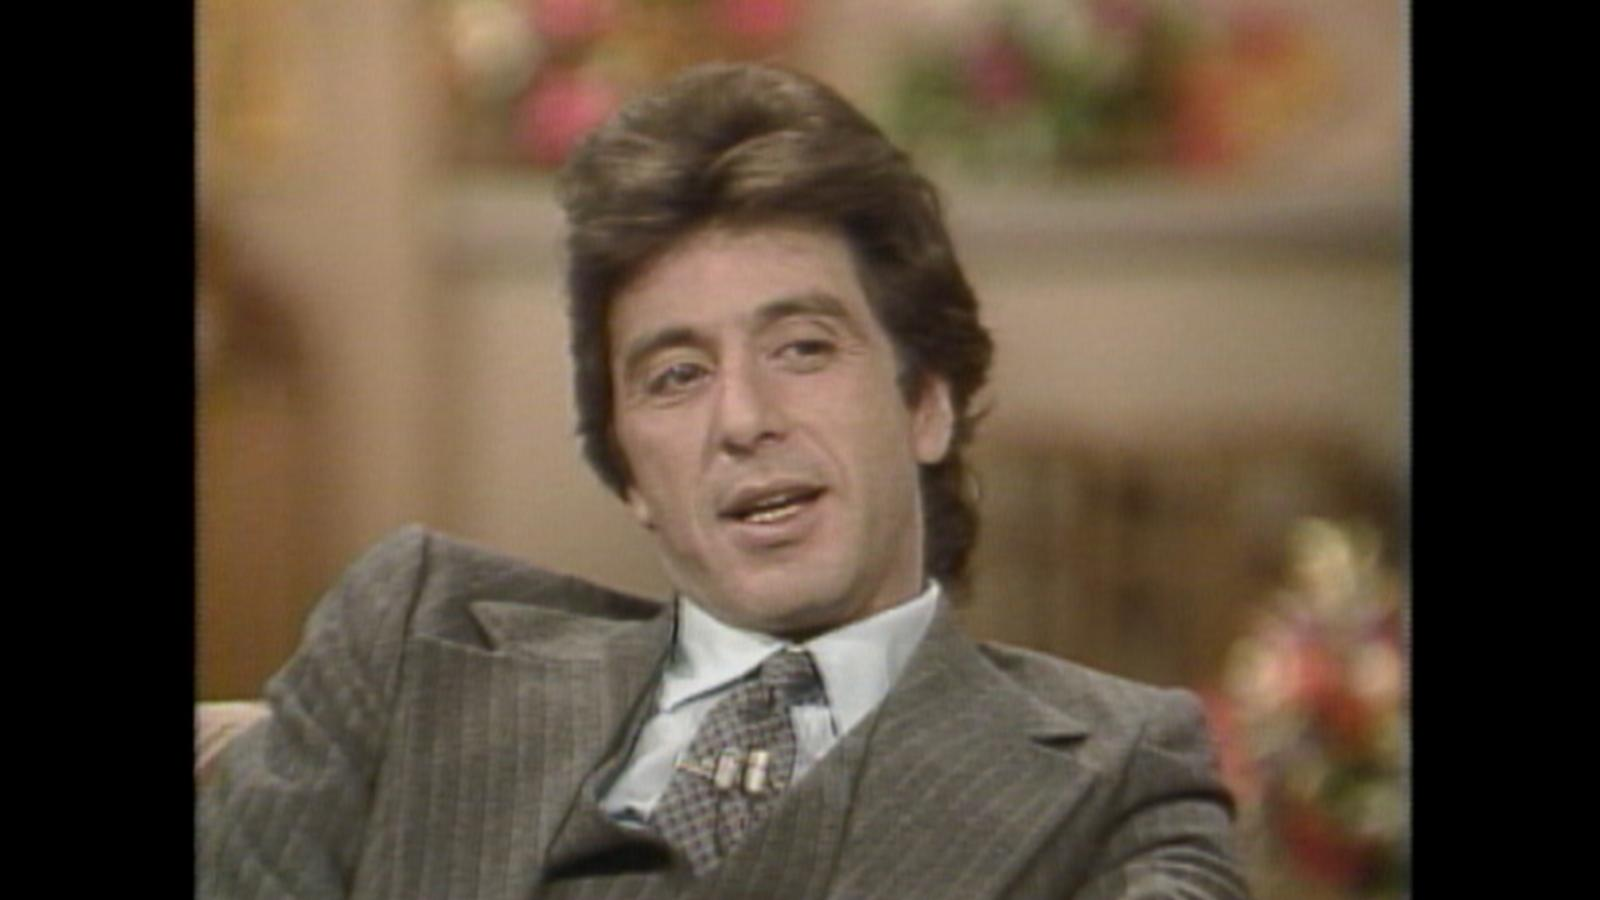 Al Pacino Al Pacino Videos At Abc News Video Archive At Abcnews